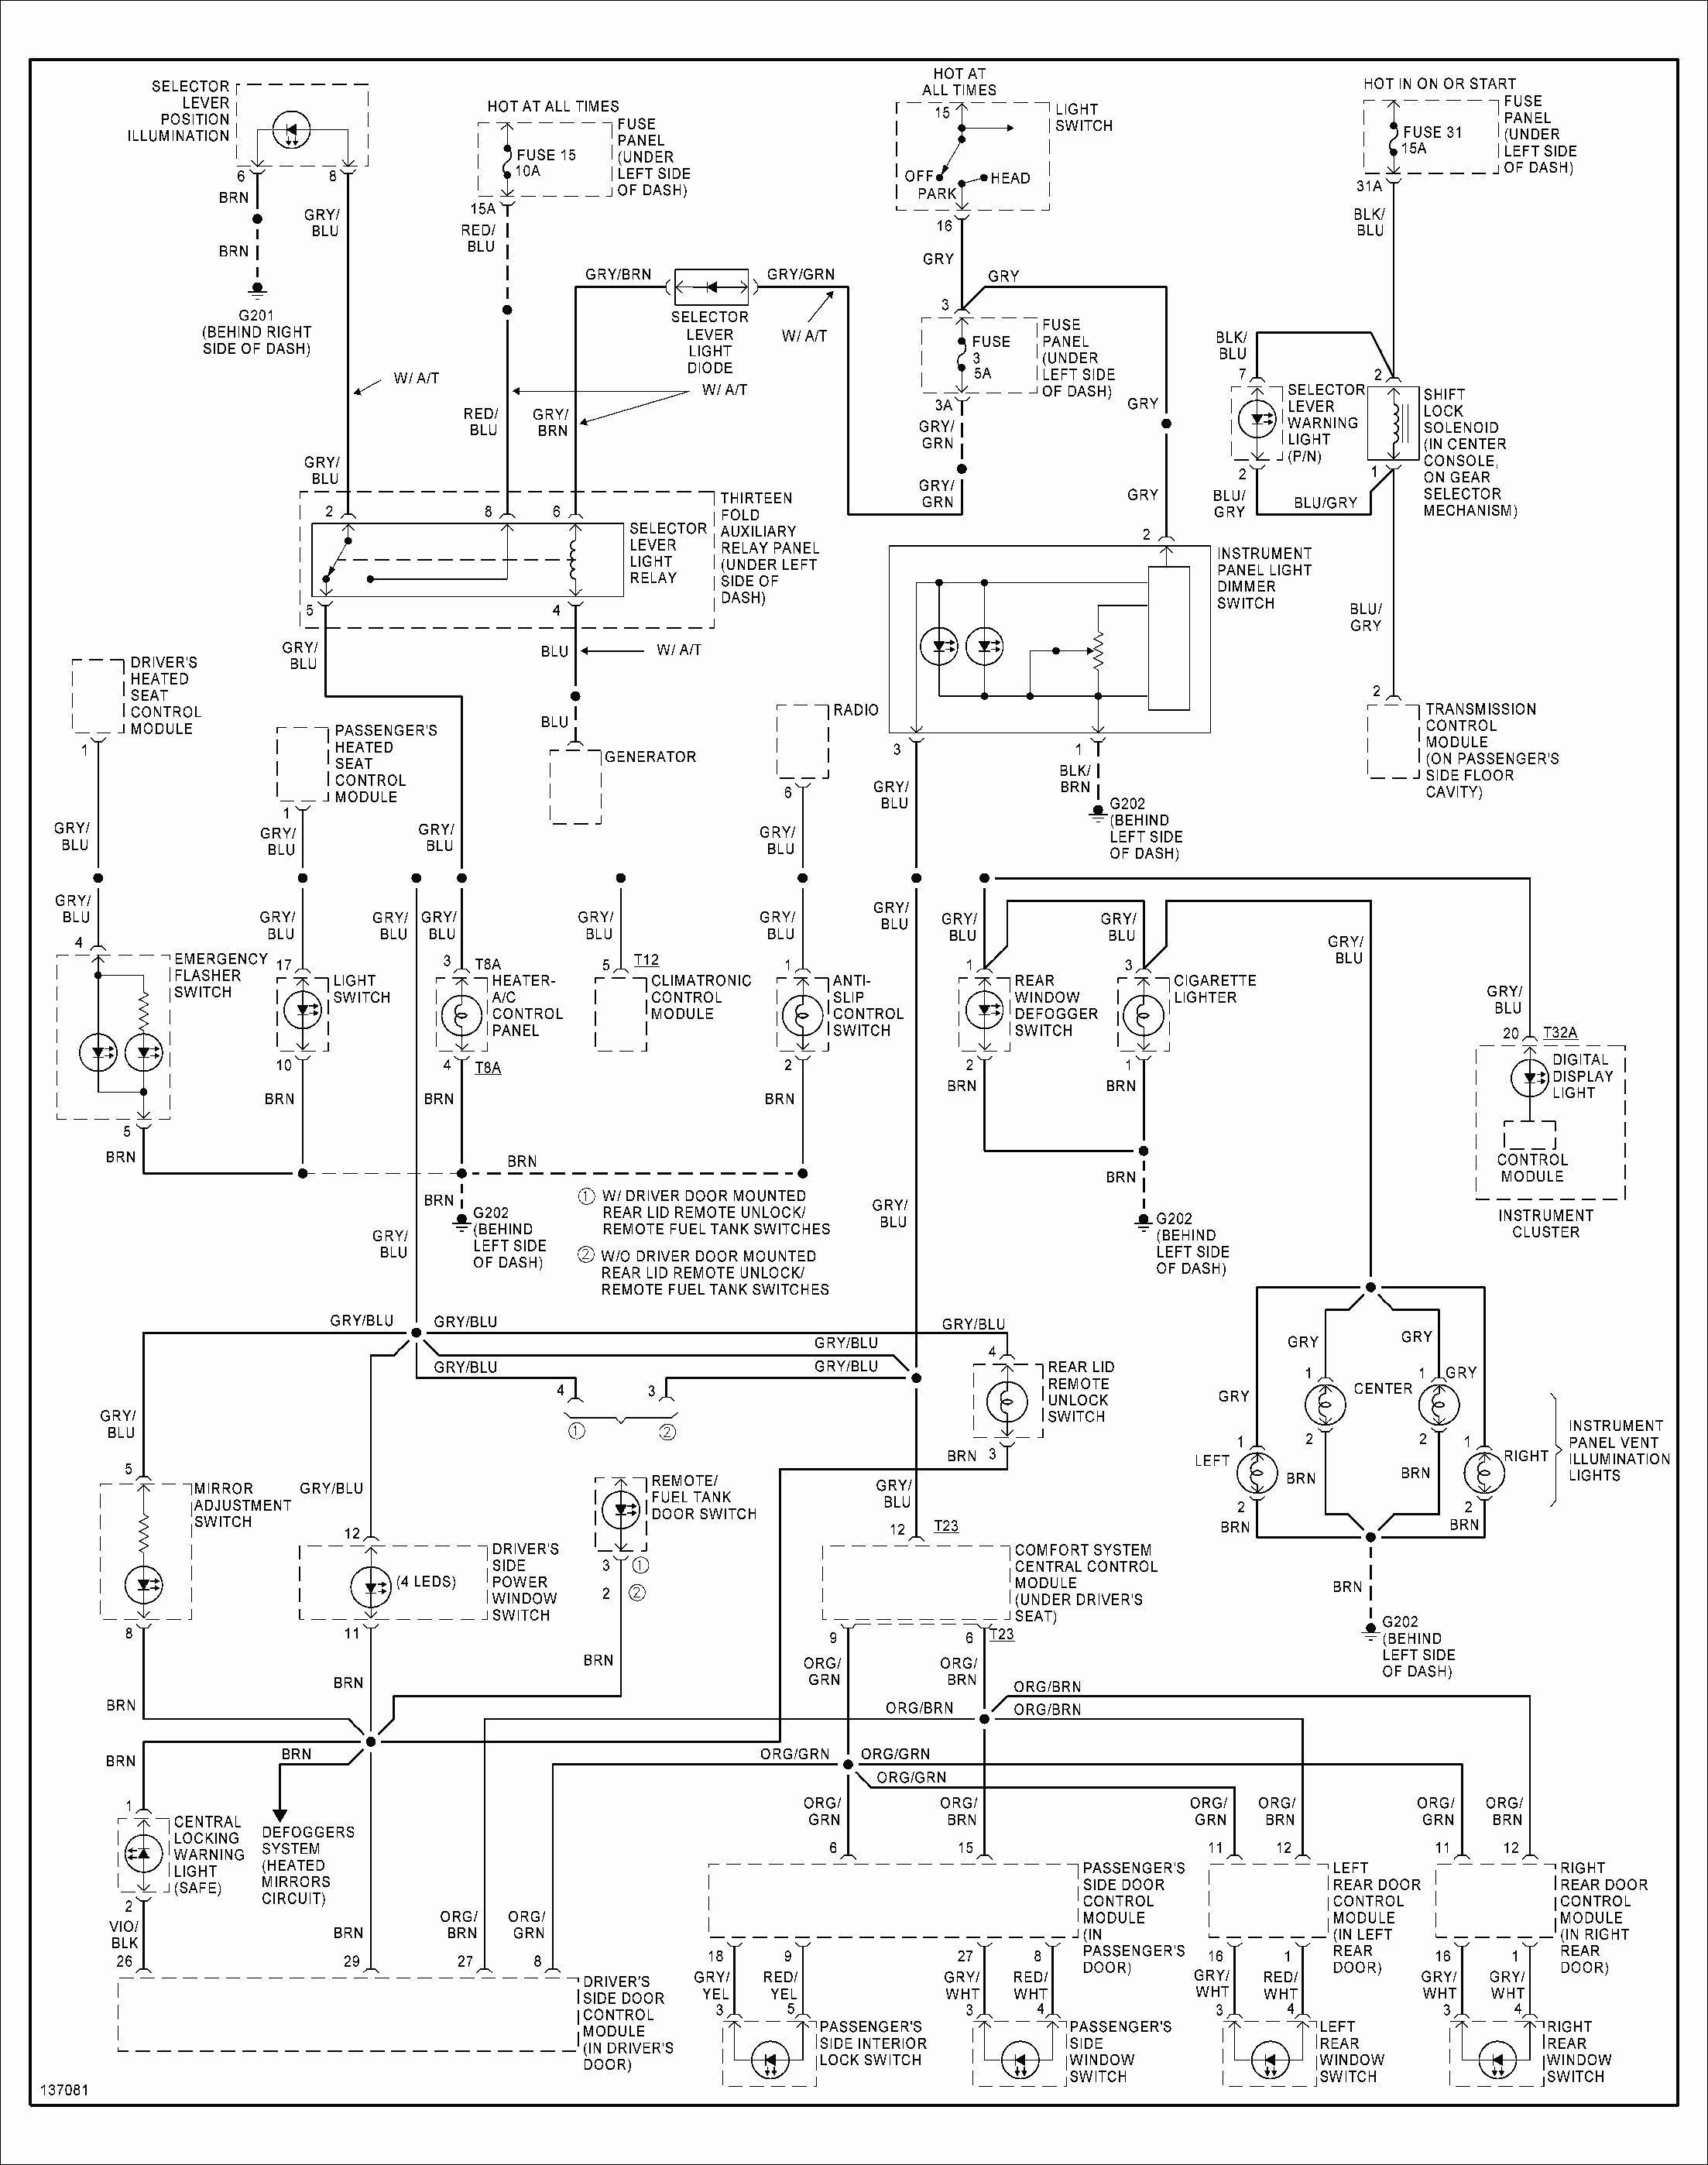 Diagram Database - Just The Best Diagram database Website | 2003 Silverado C1500 Wiring Diagram |  | bernard.tempez.jobdiagram.hosteria87.it